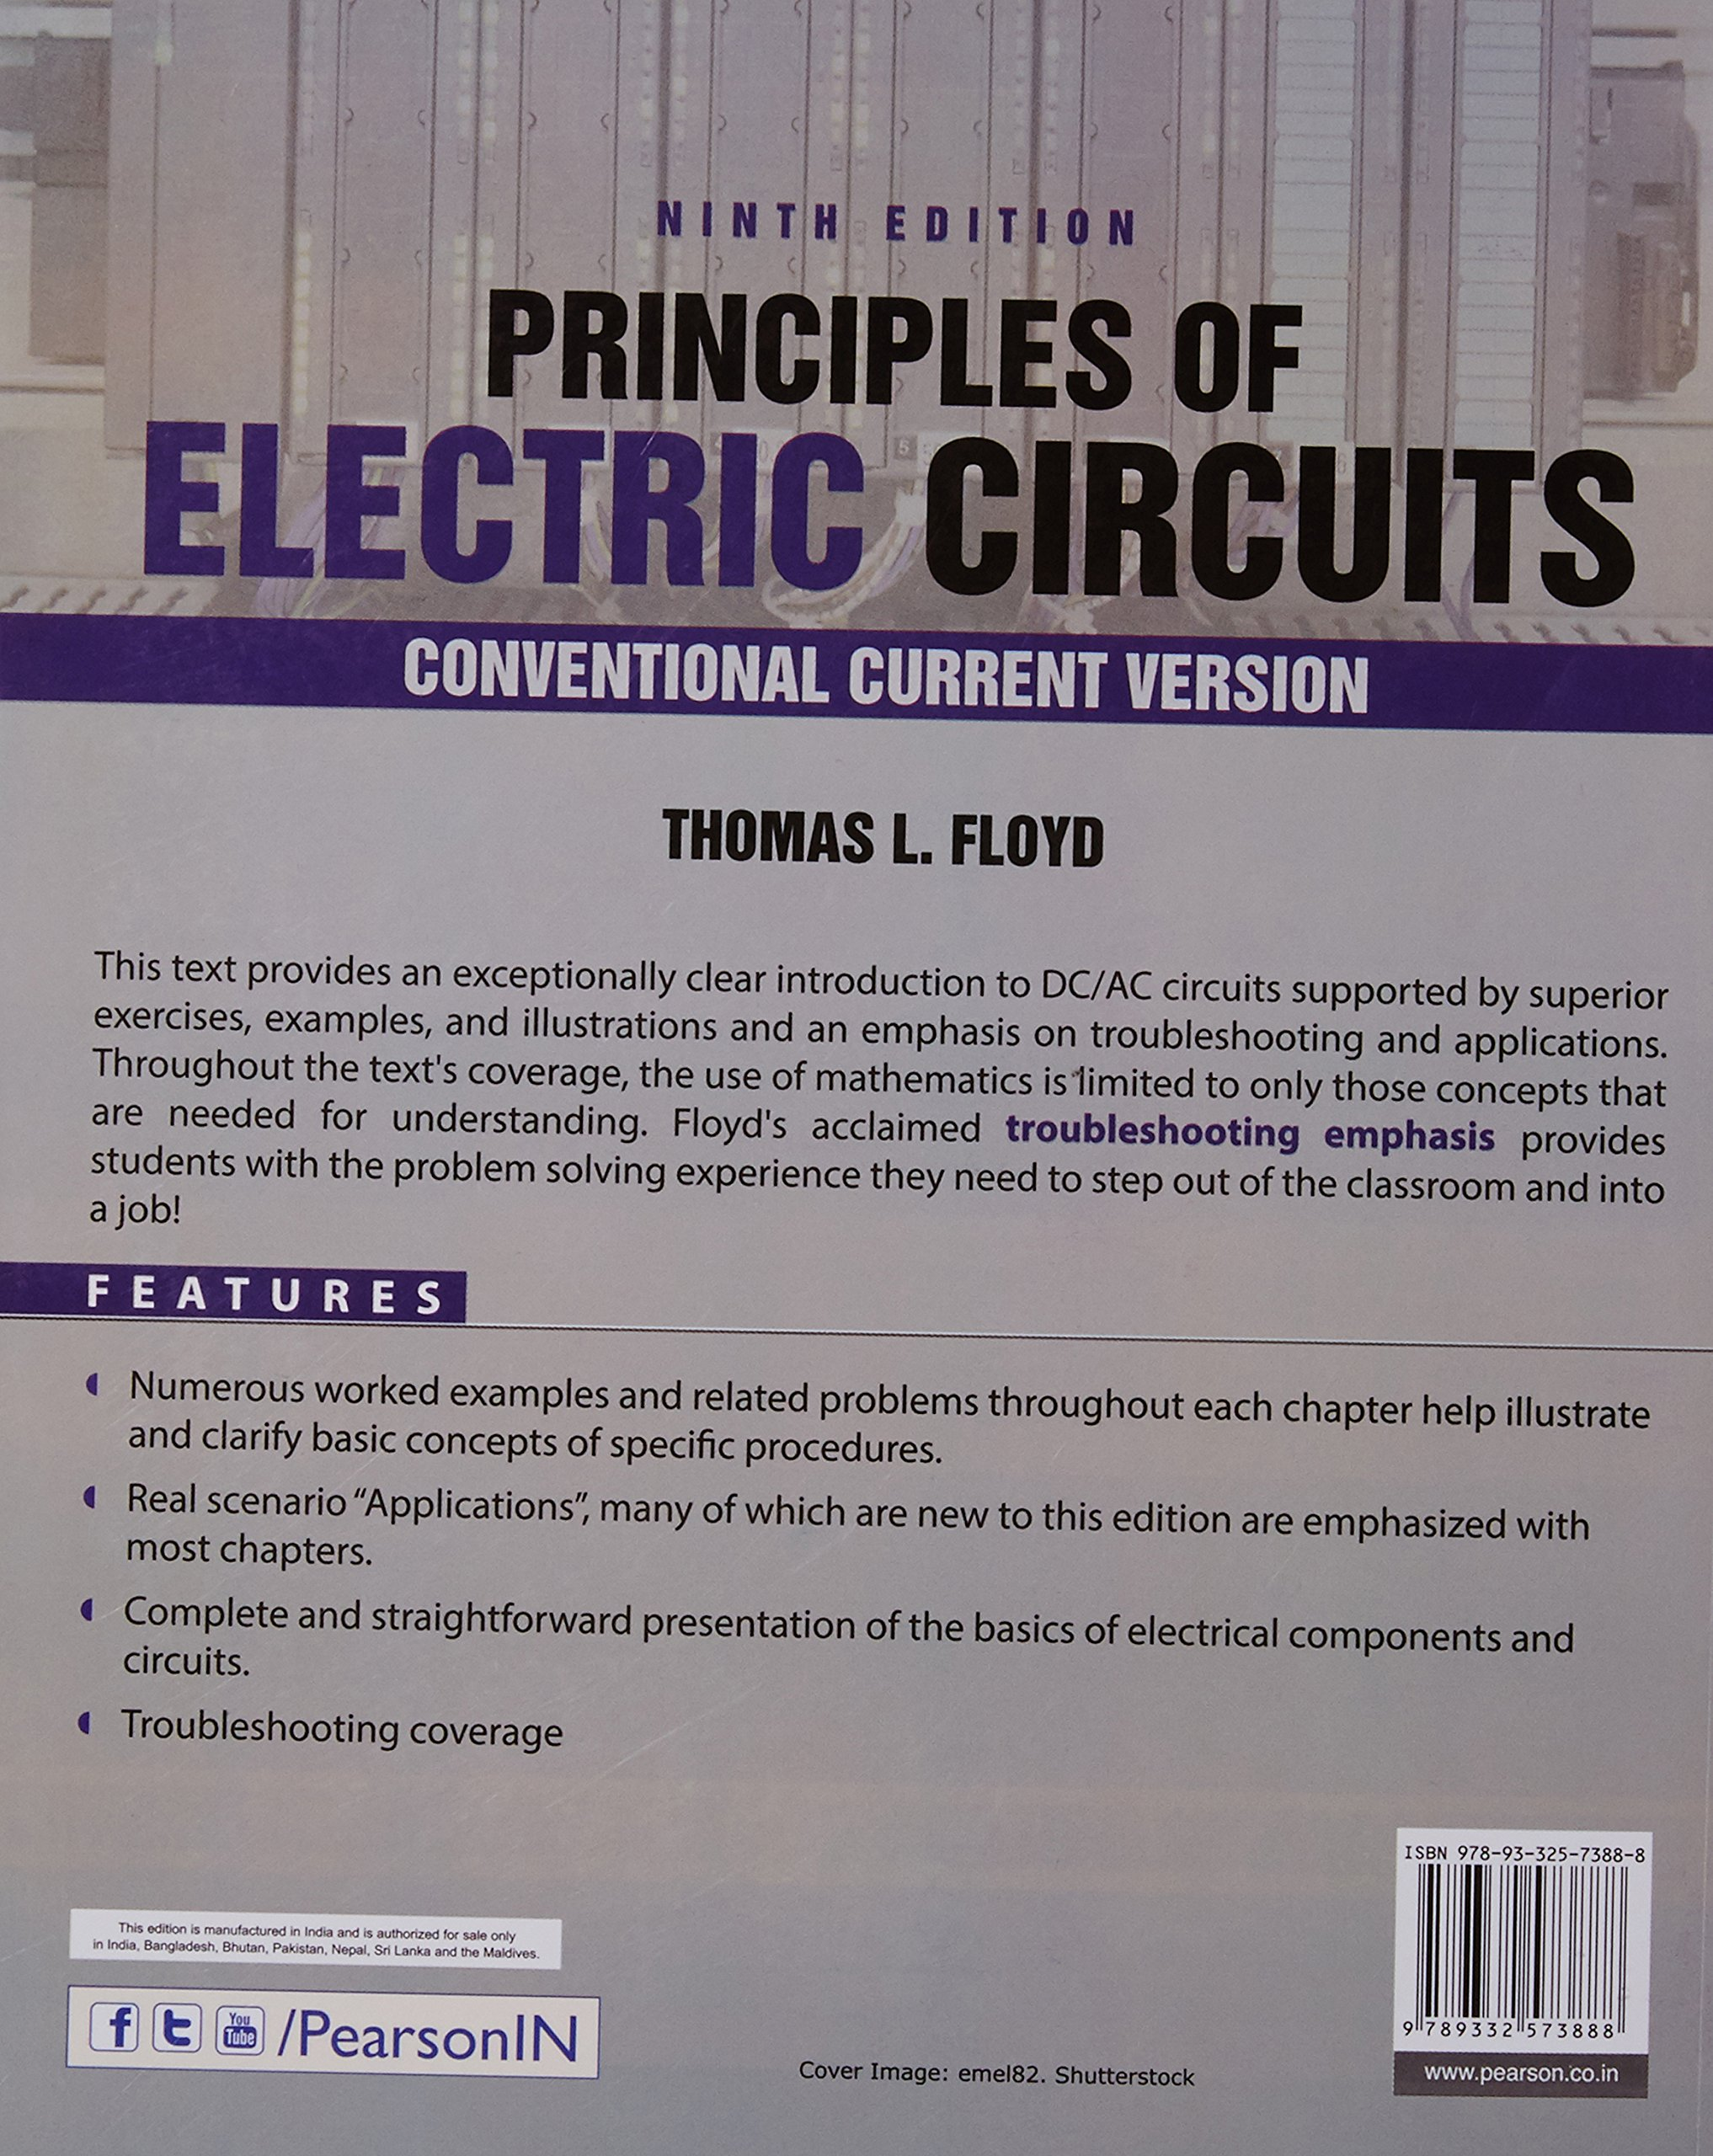 Principles Of Electric Circuits 9ed Floyd 9789332573888 Amazon Circuit App For Windows In The Store Books